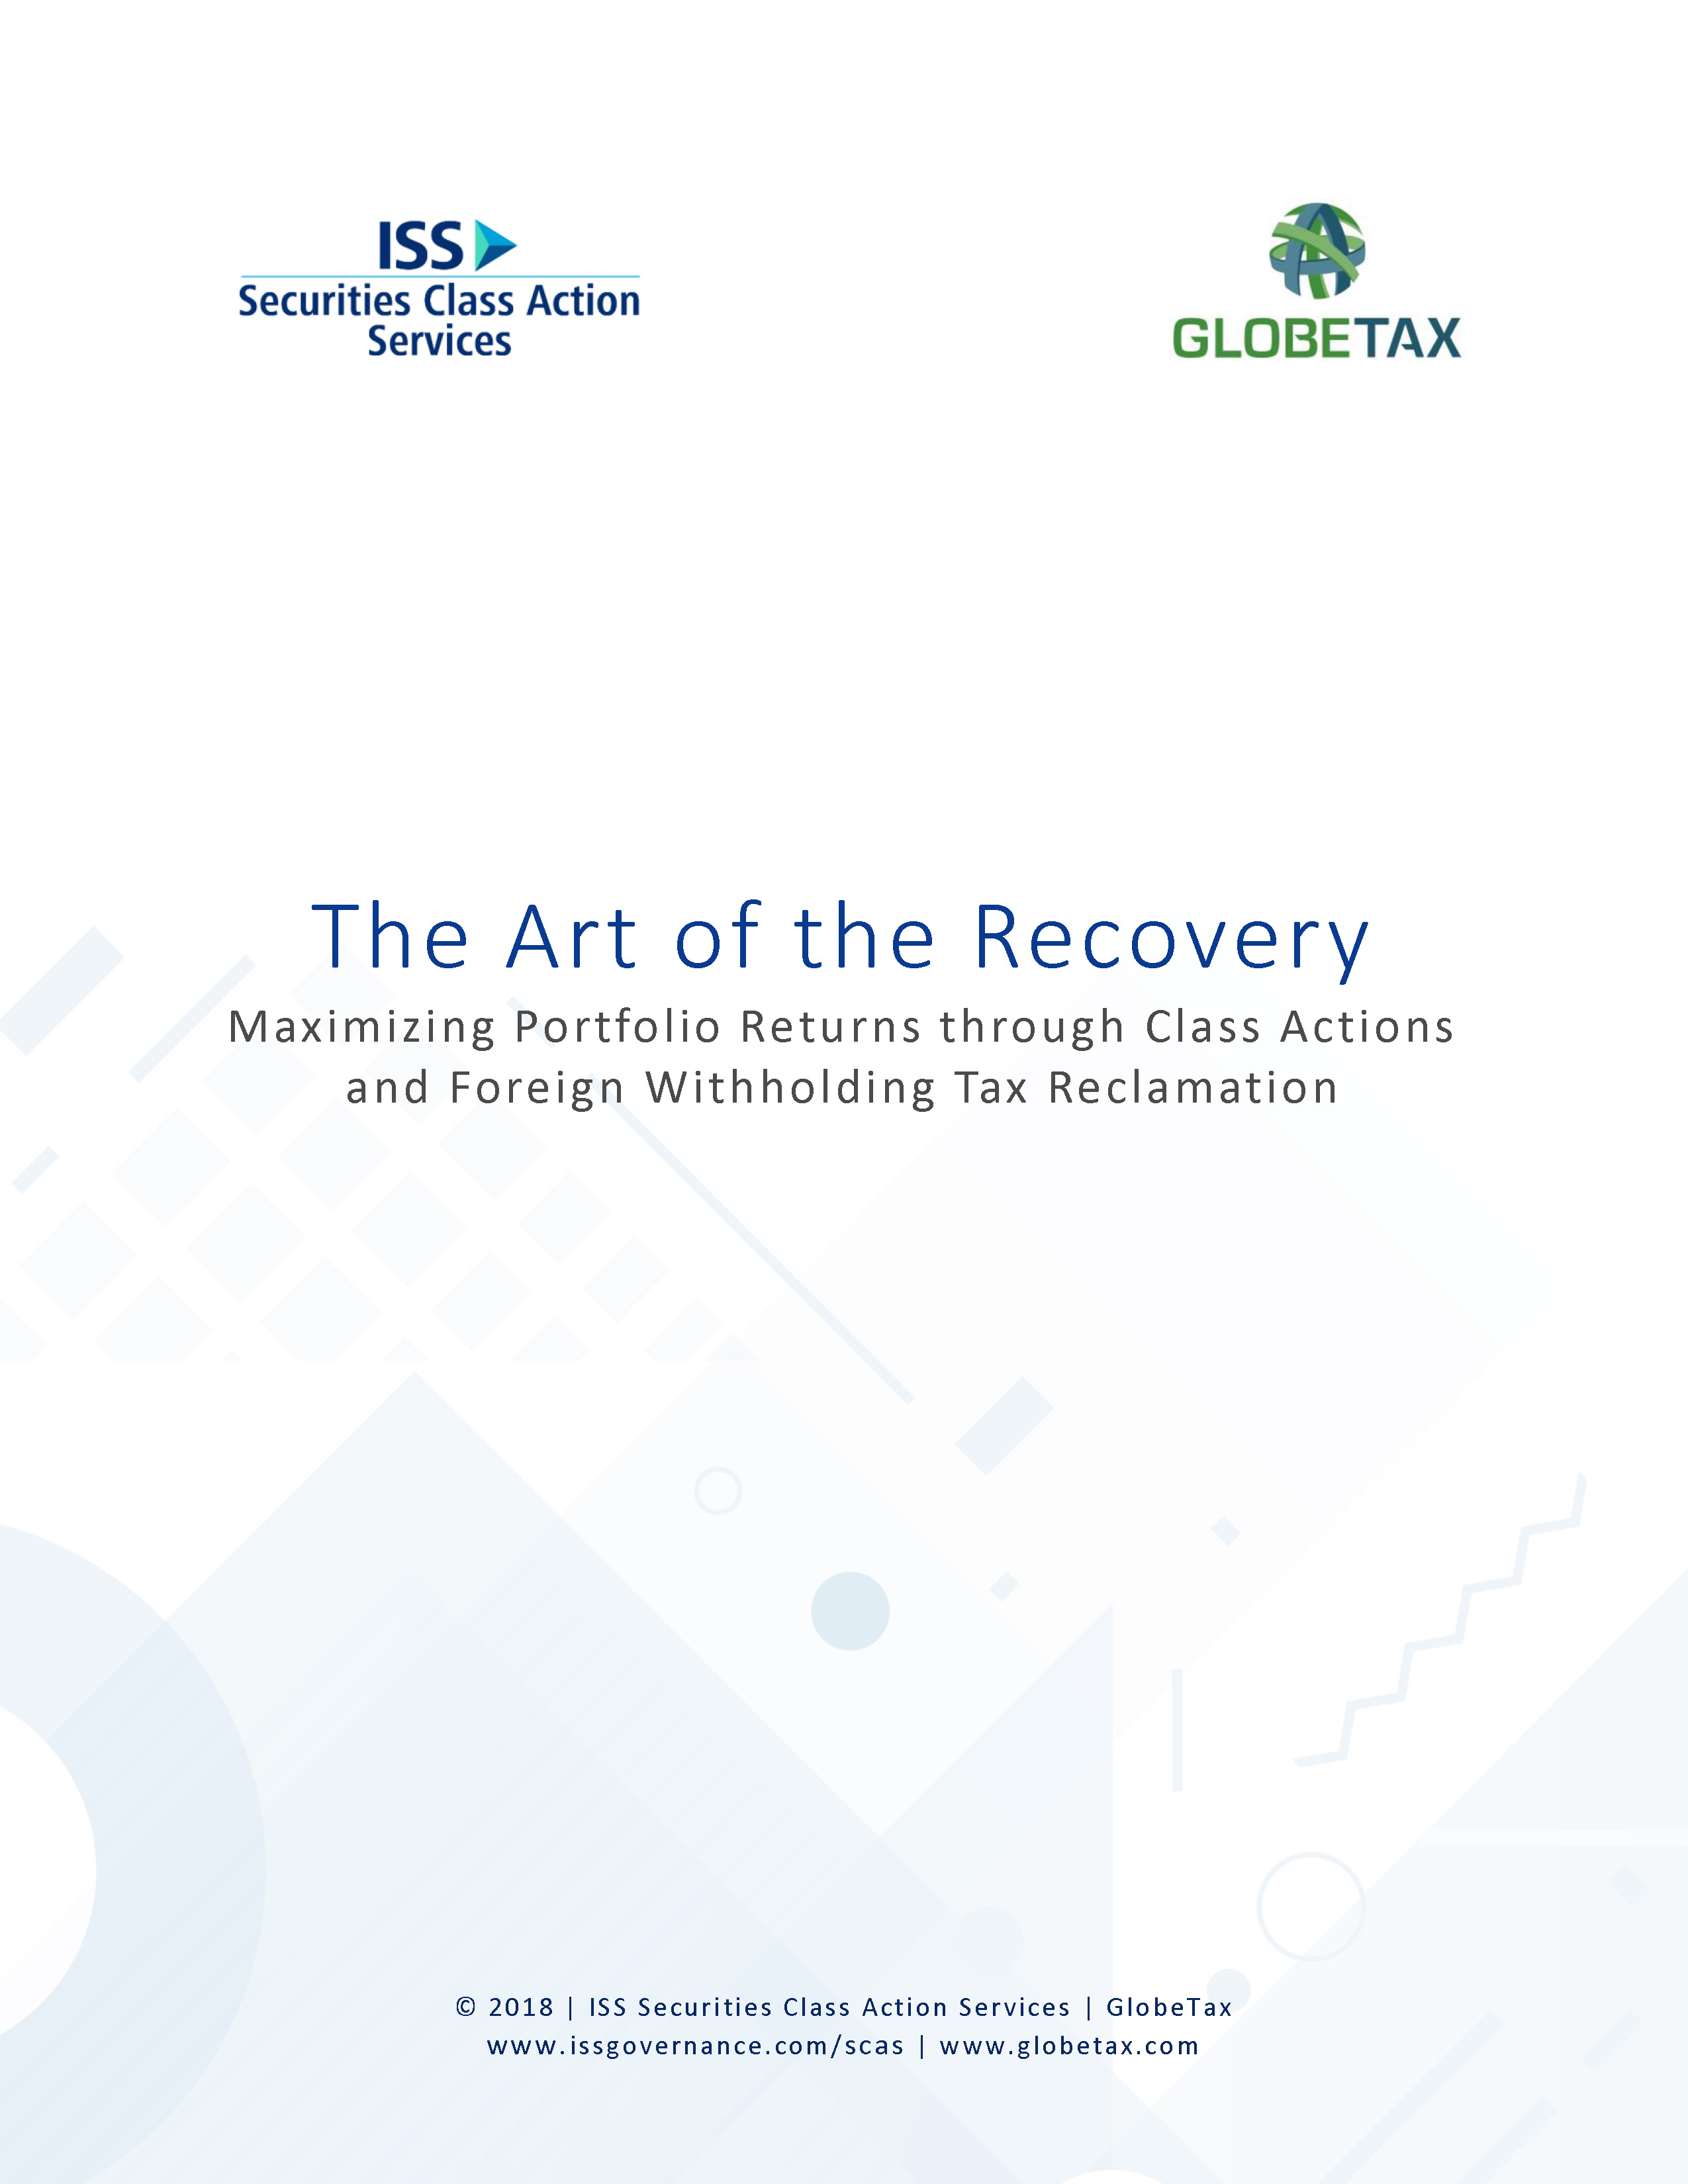 scas-the-art-of-the-recovery